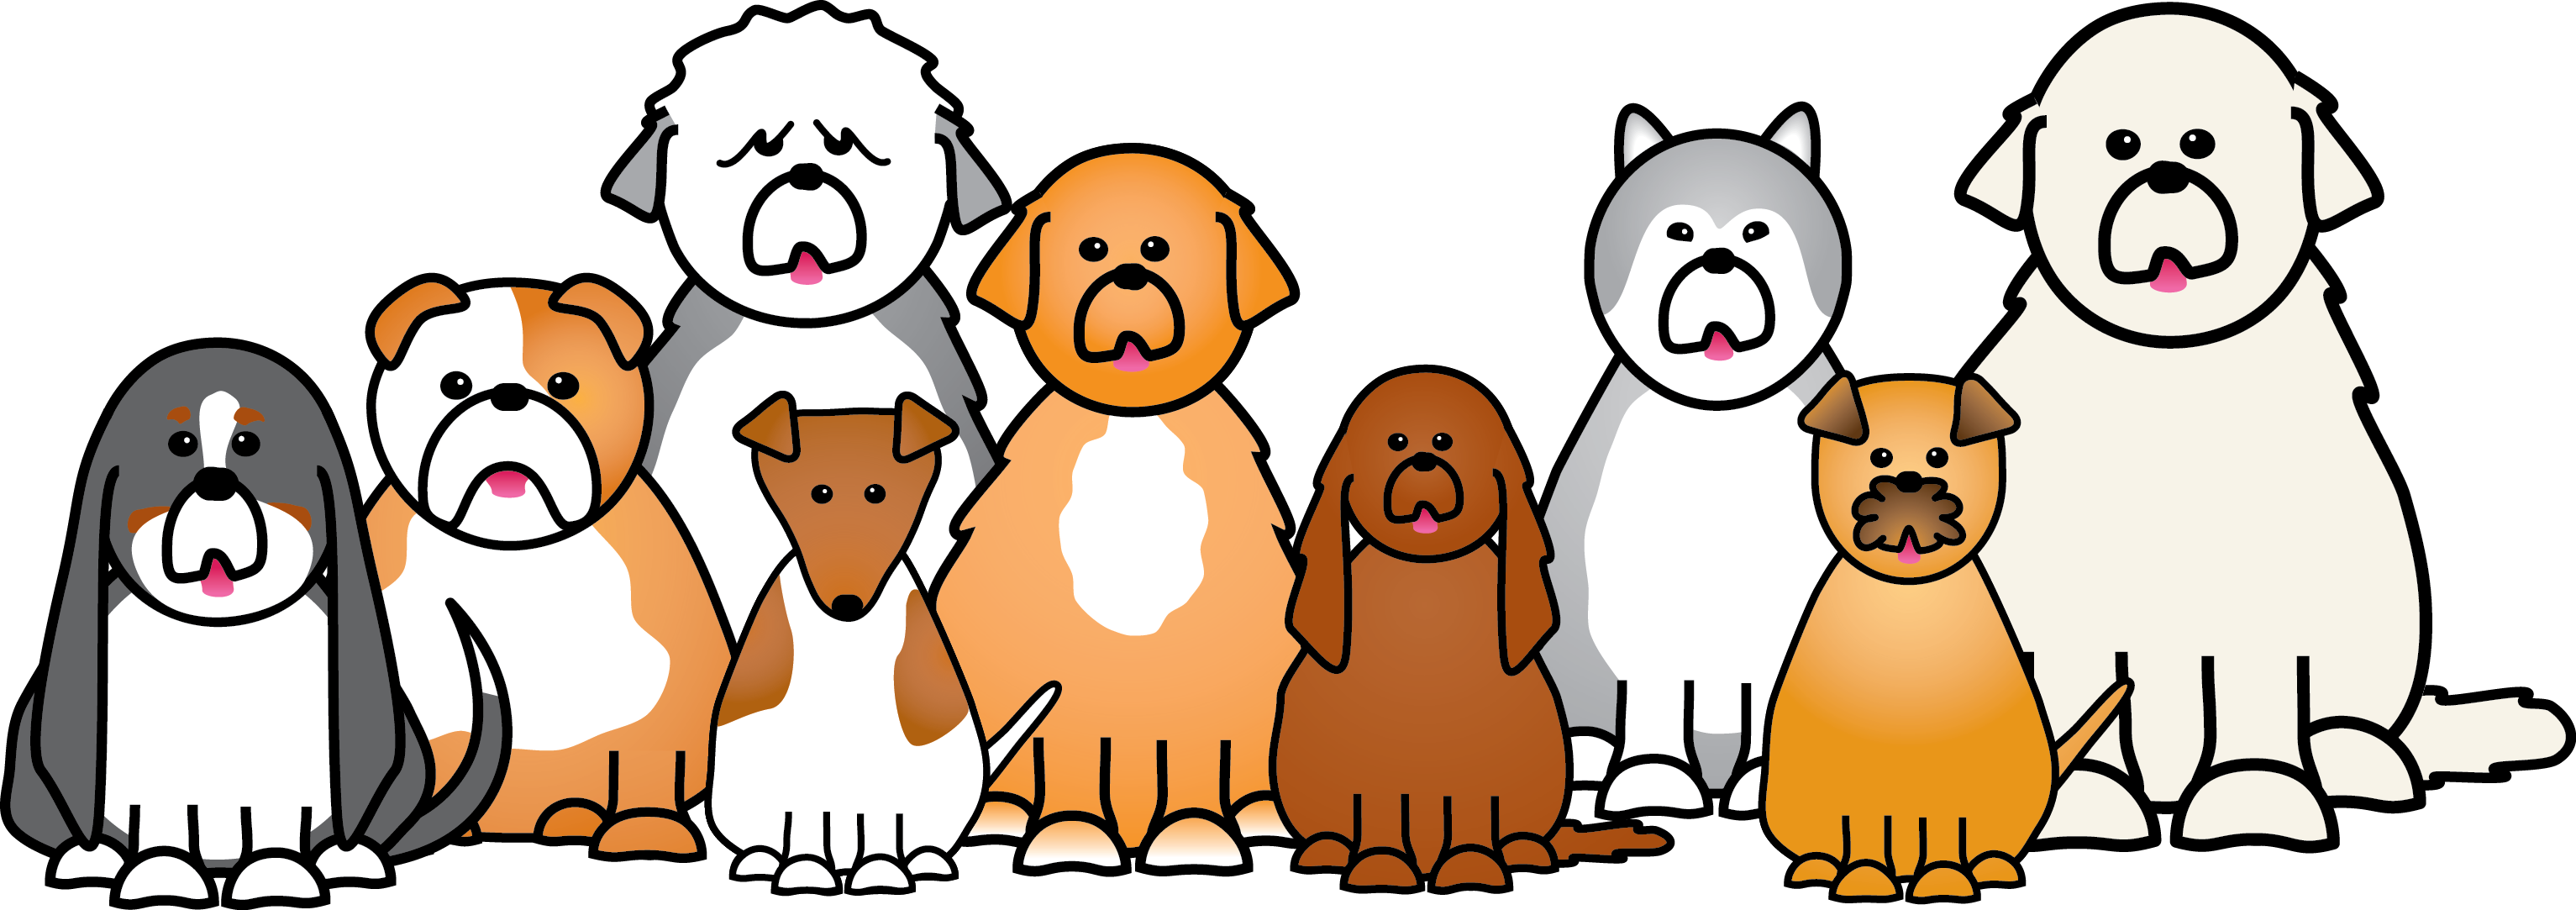 Droopy dog clipart jpg download Dog Puppy Cat Pet Clip art - Dogs Cartoon 3066*1083 transprent Png ... jpg download